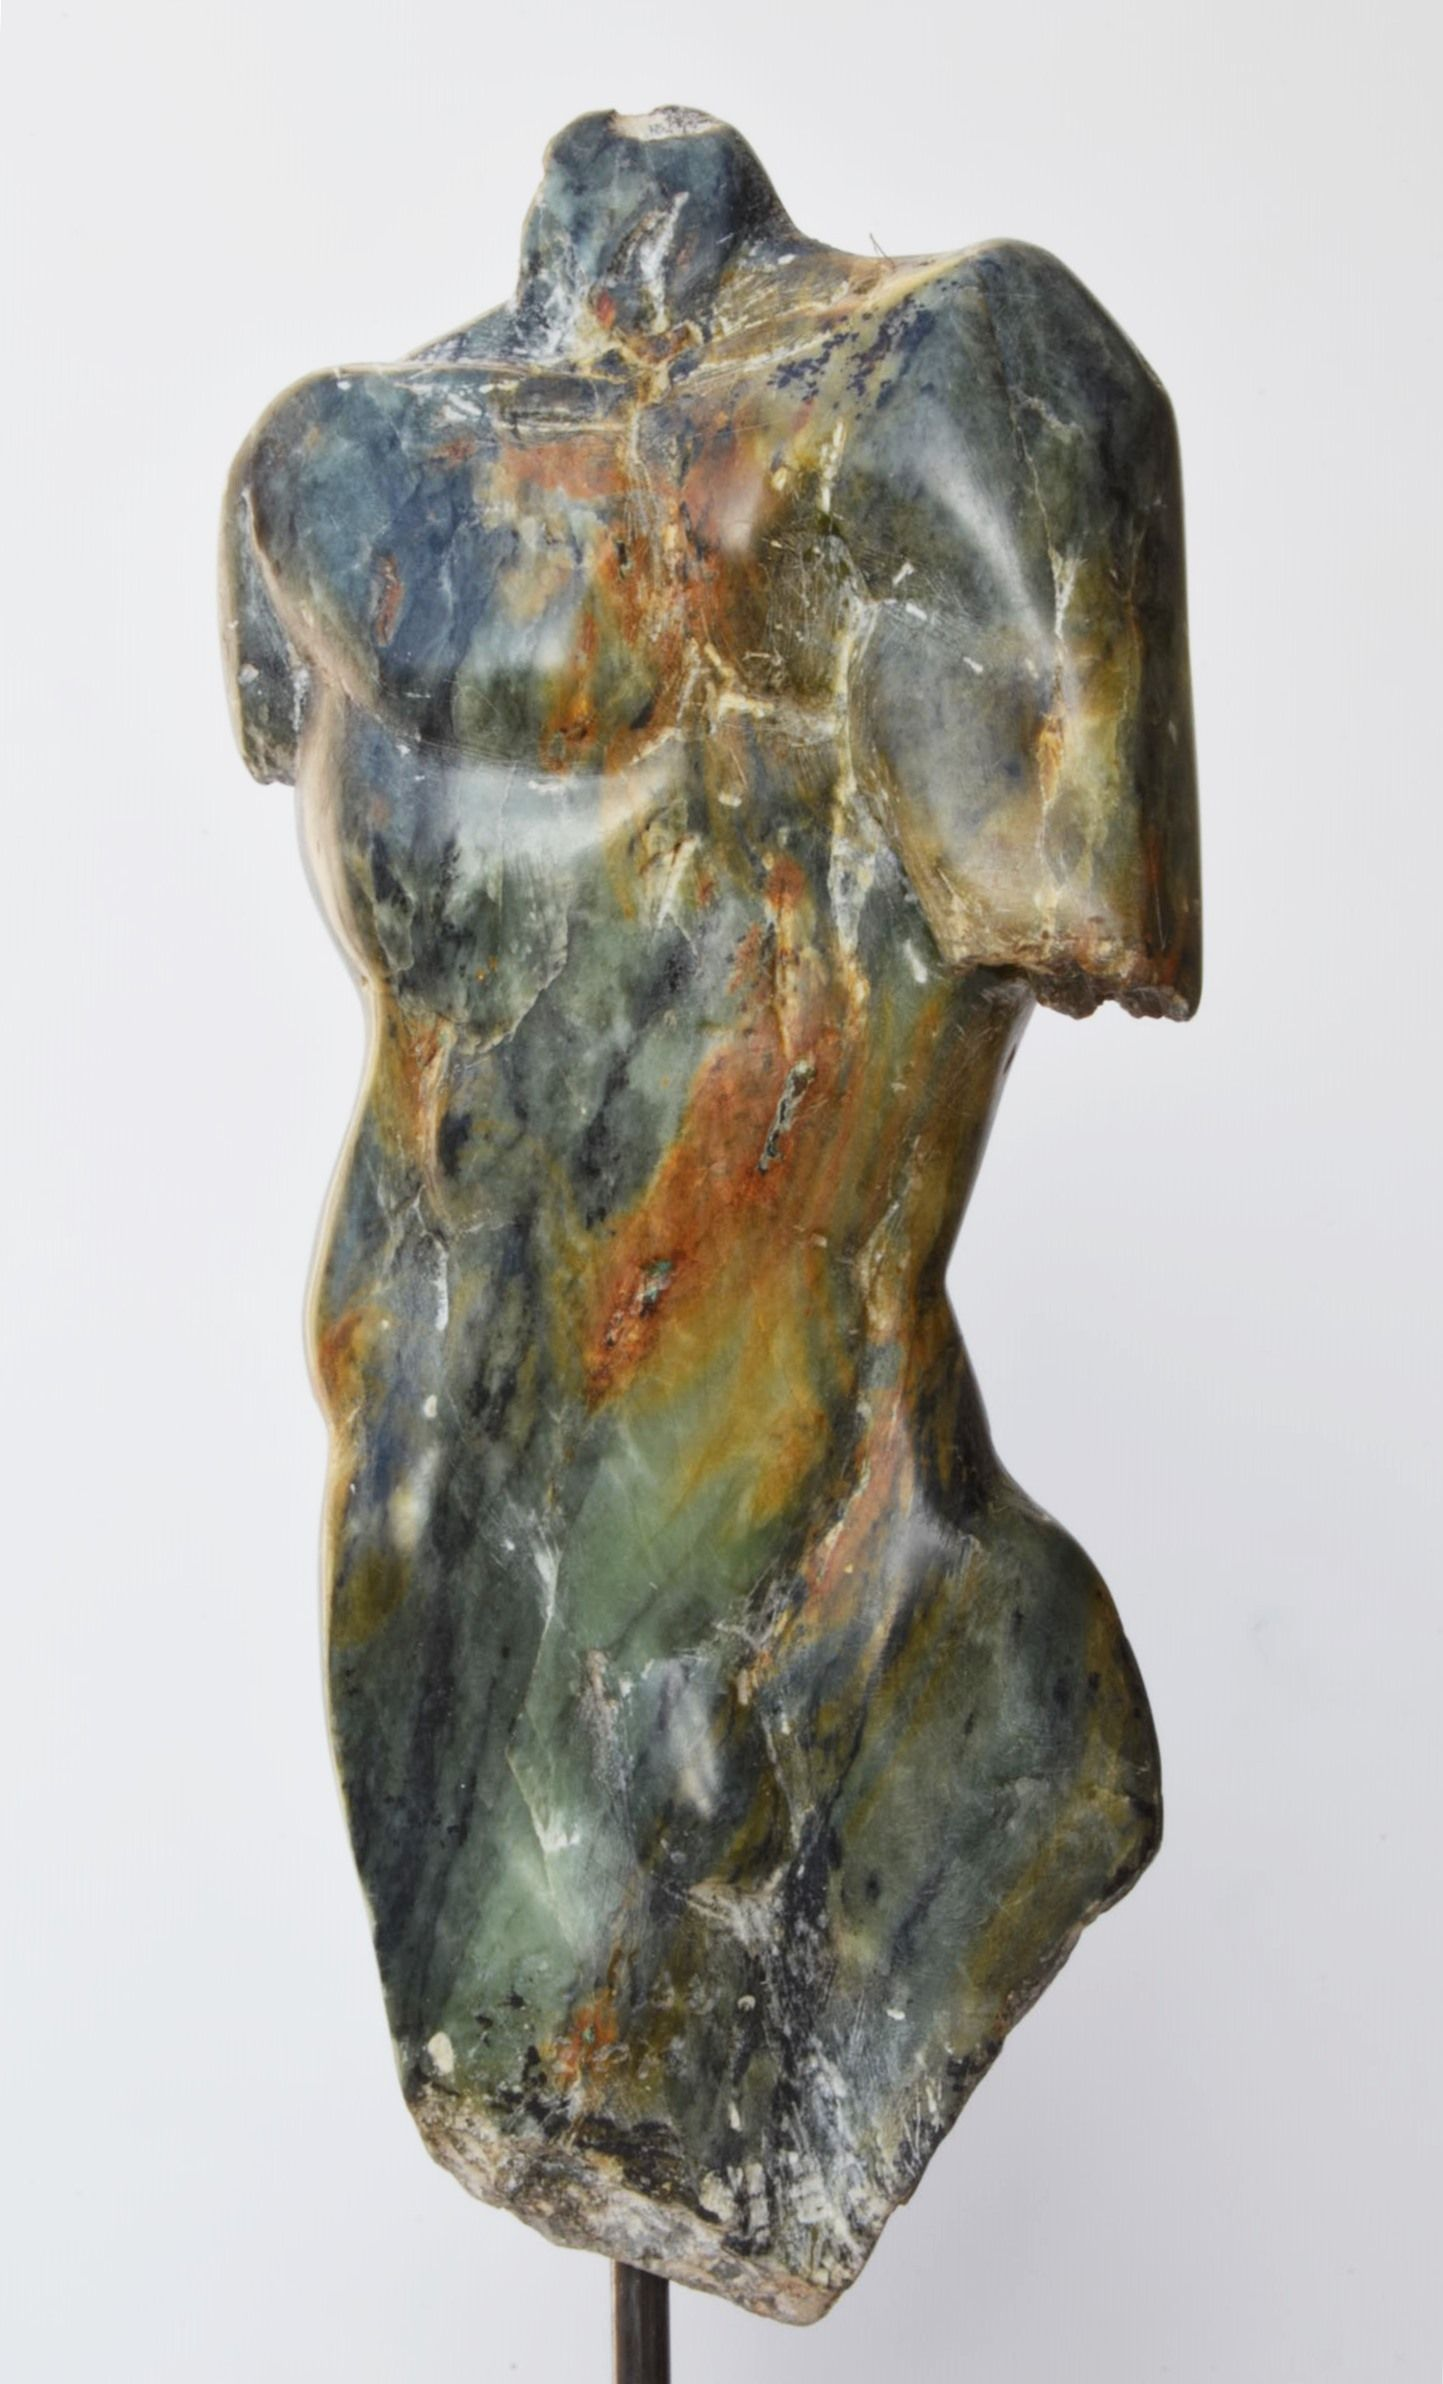 Torse d'homme III,Yann Guillon,Sculpture contemporaine